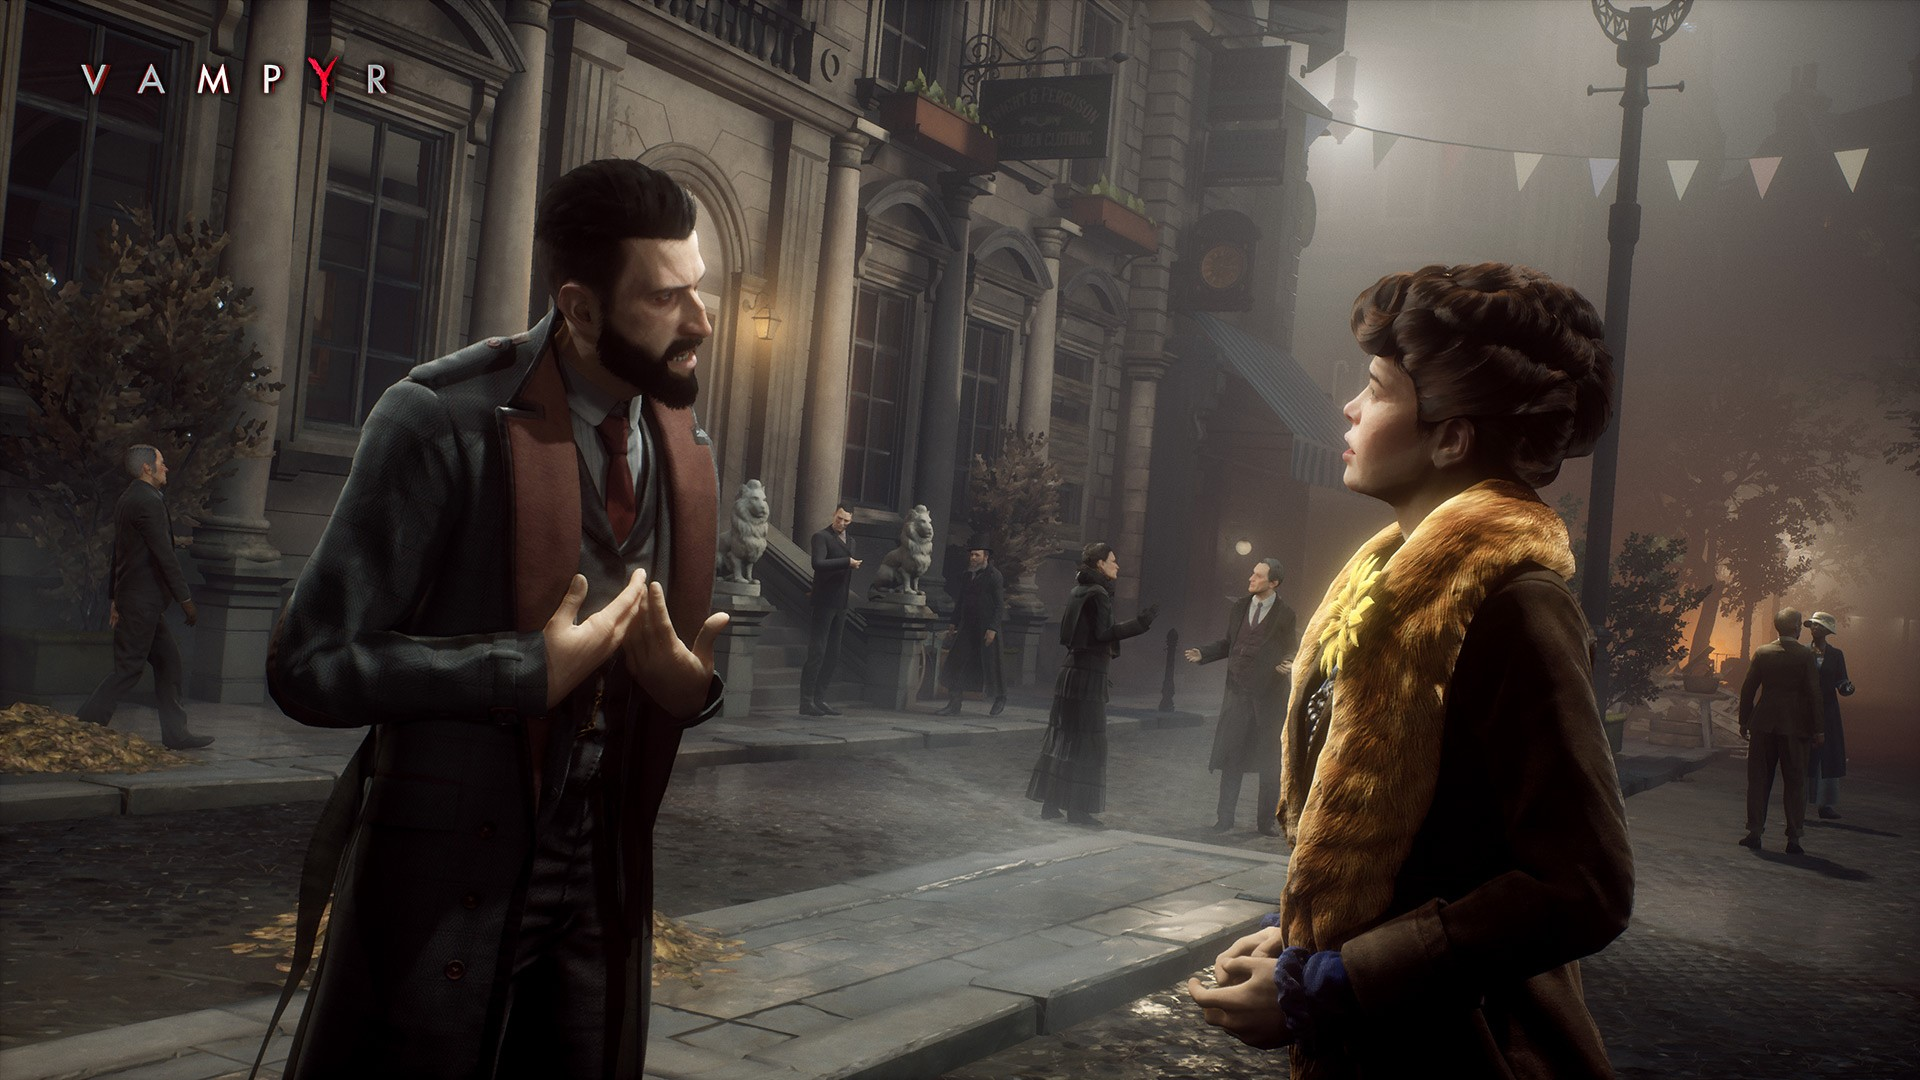 10 Vampyr Tips And Tricks to Amp Up Your Vamp! 2